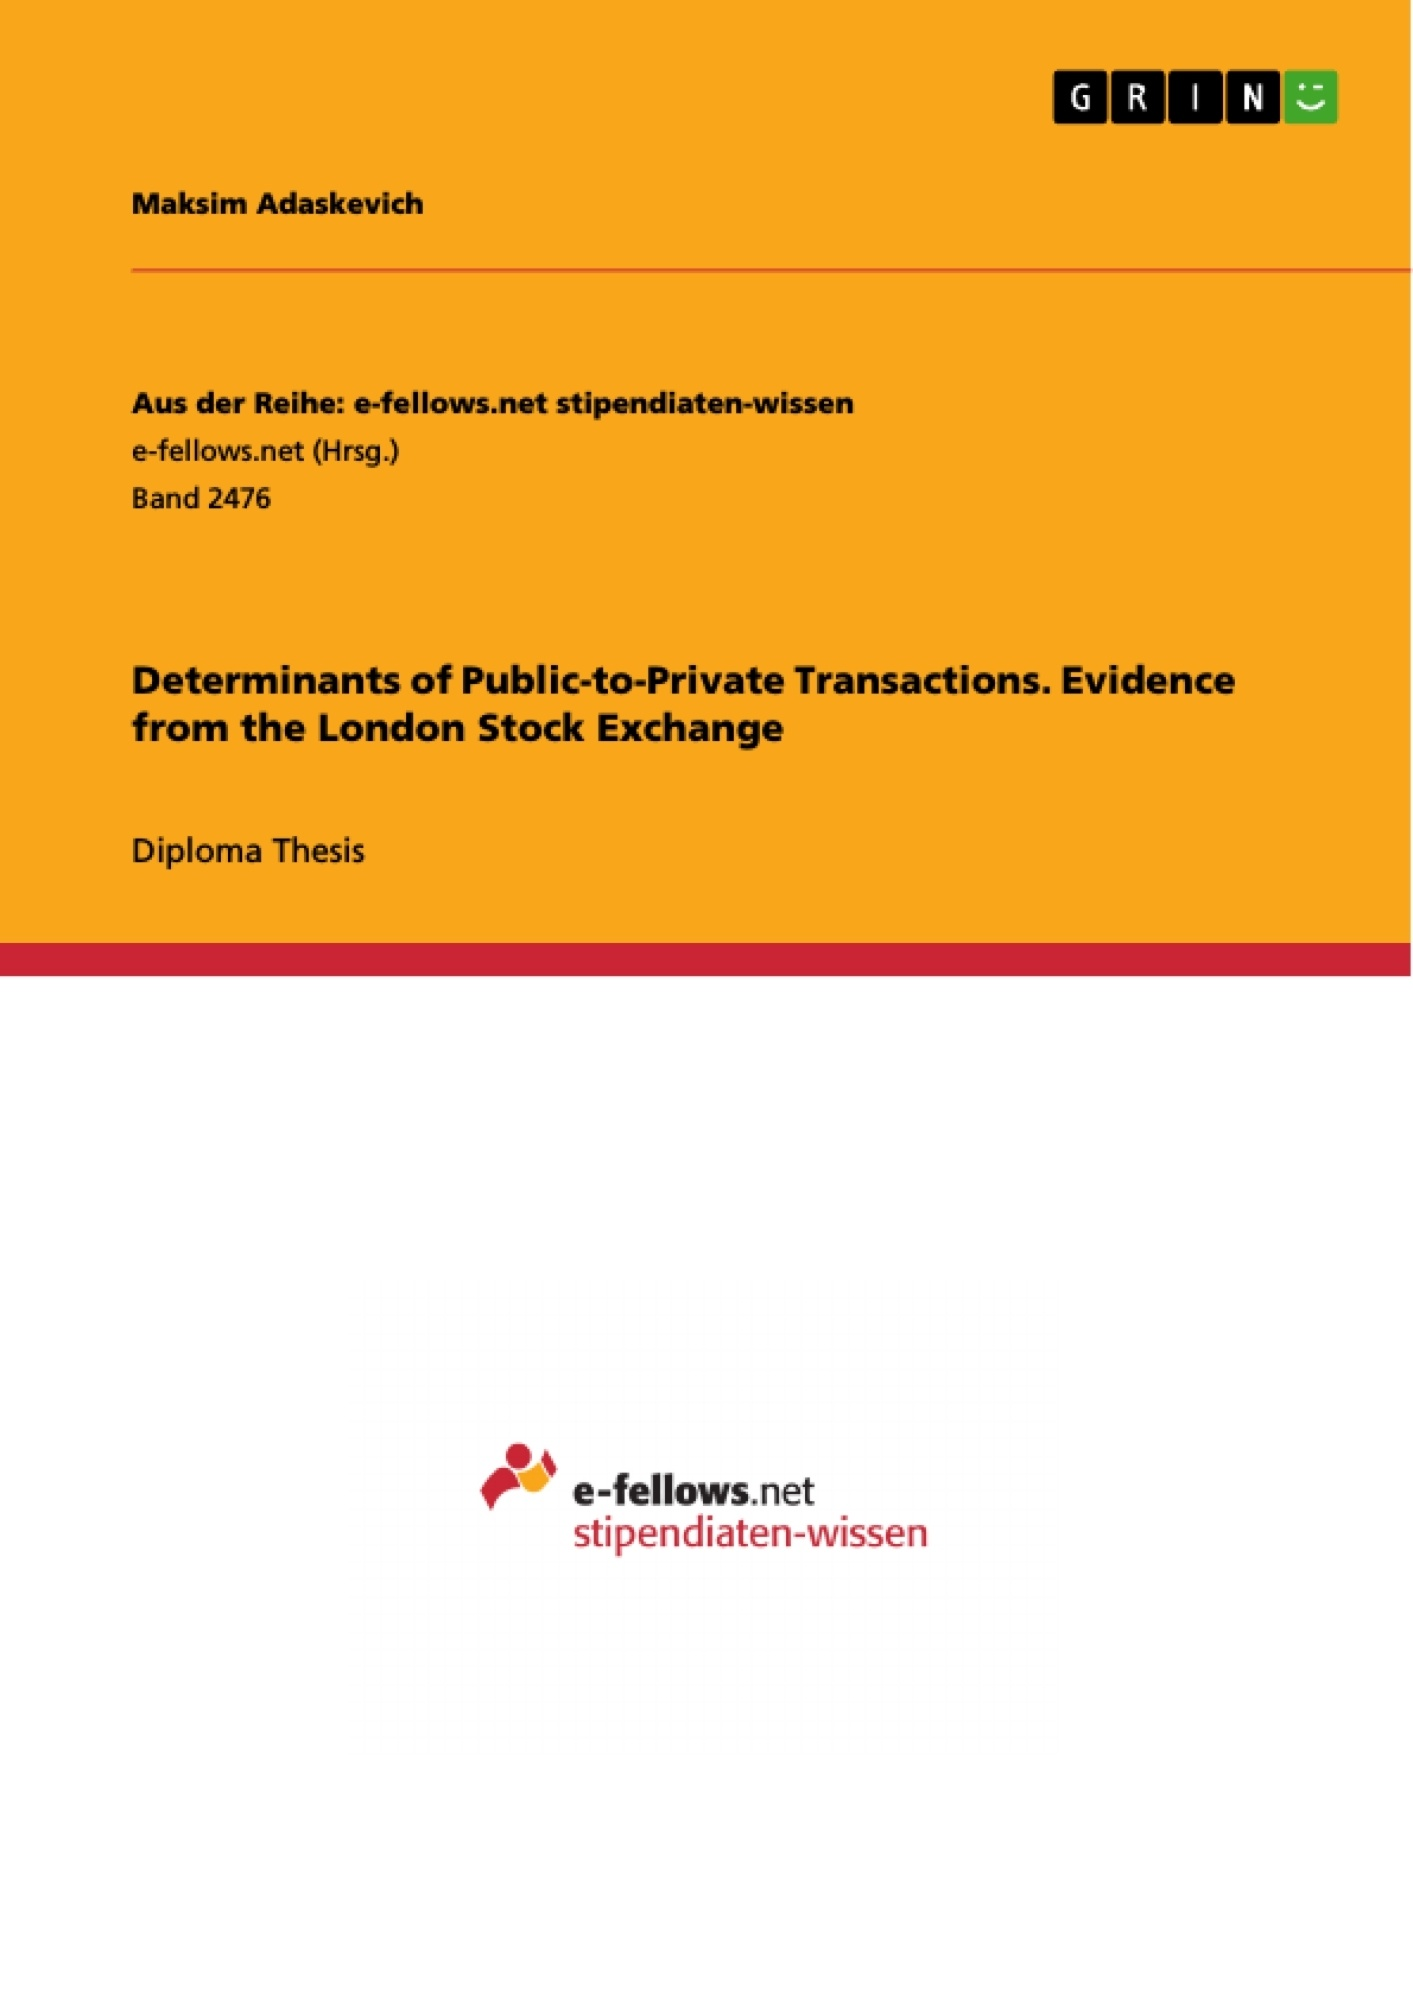 Title: Determinants of Public-to-Private Transactions. Evidence from the London Stock Exchange